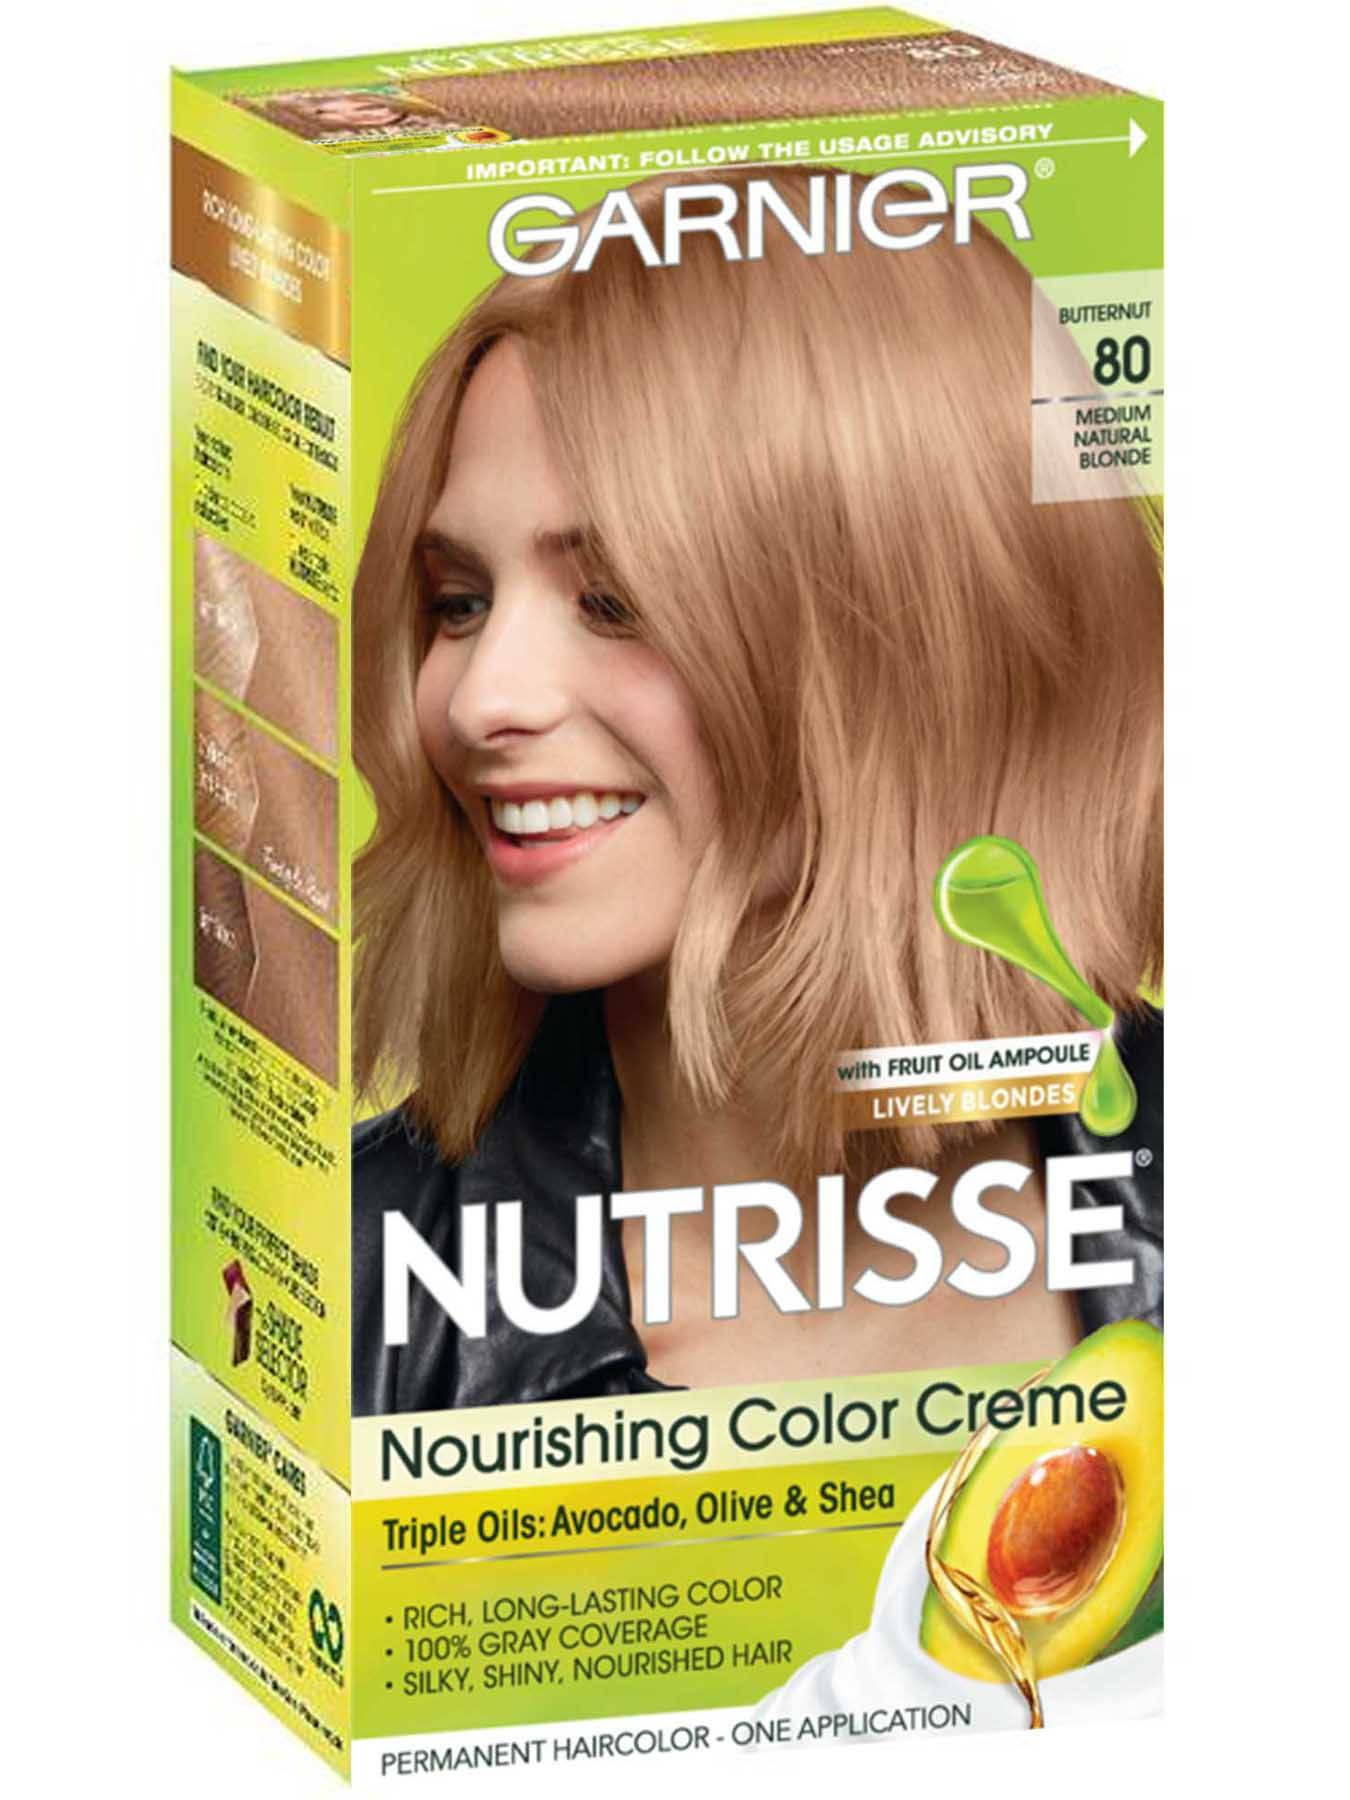 Nutrisse Nourishing Color Creme - Medium Natural Blonde 80 - Garnier